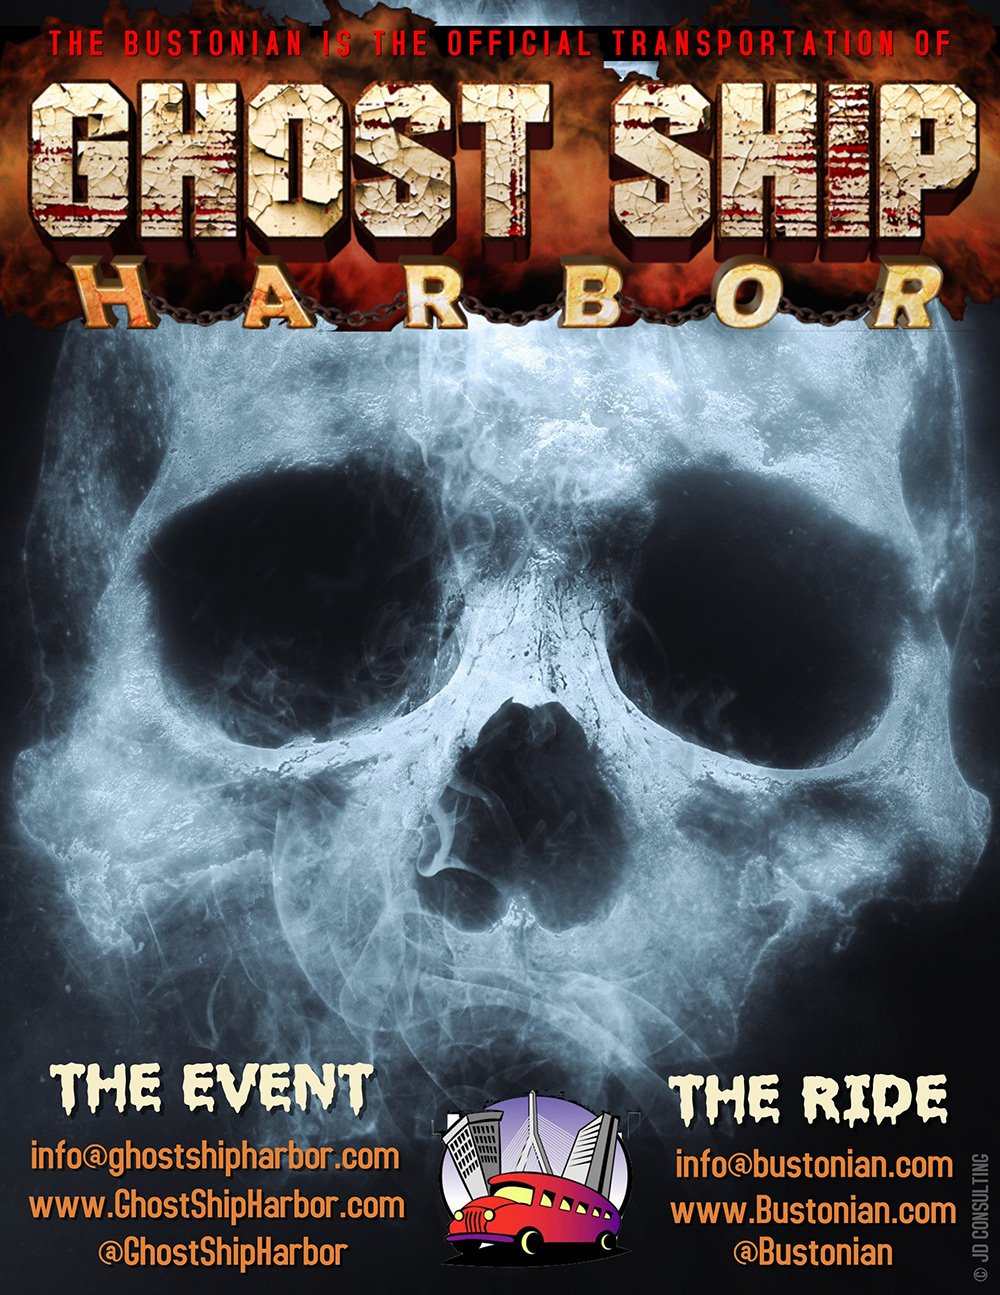 Bustonian Ghost Ship Harbor